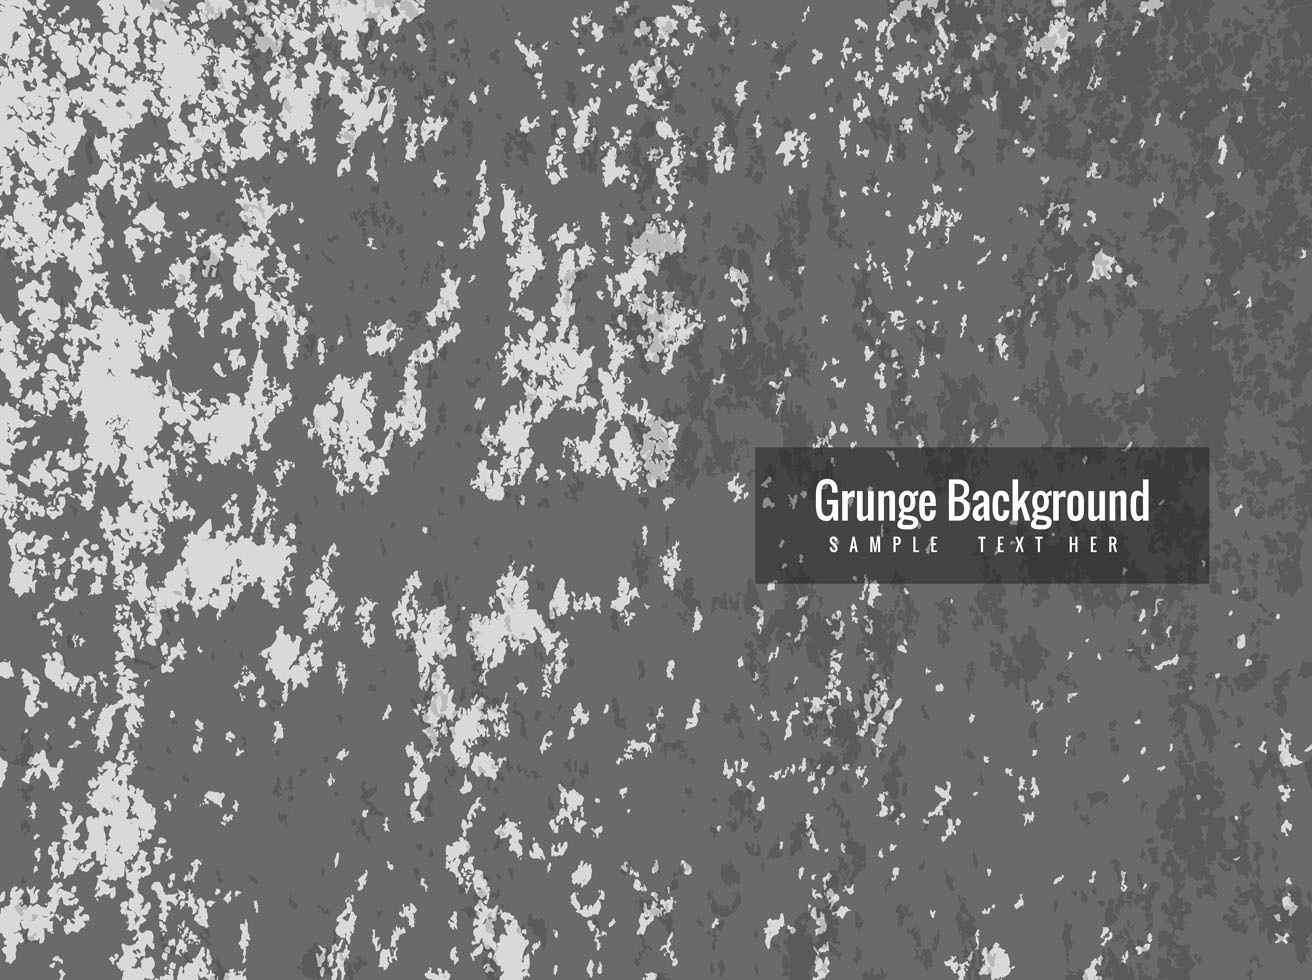 Free Vector Grunge Texture Background